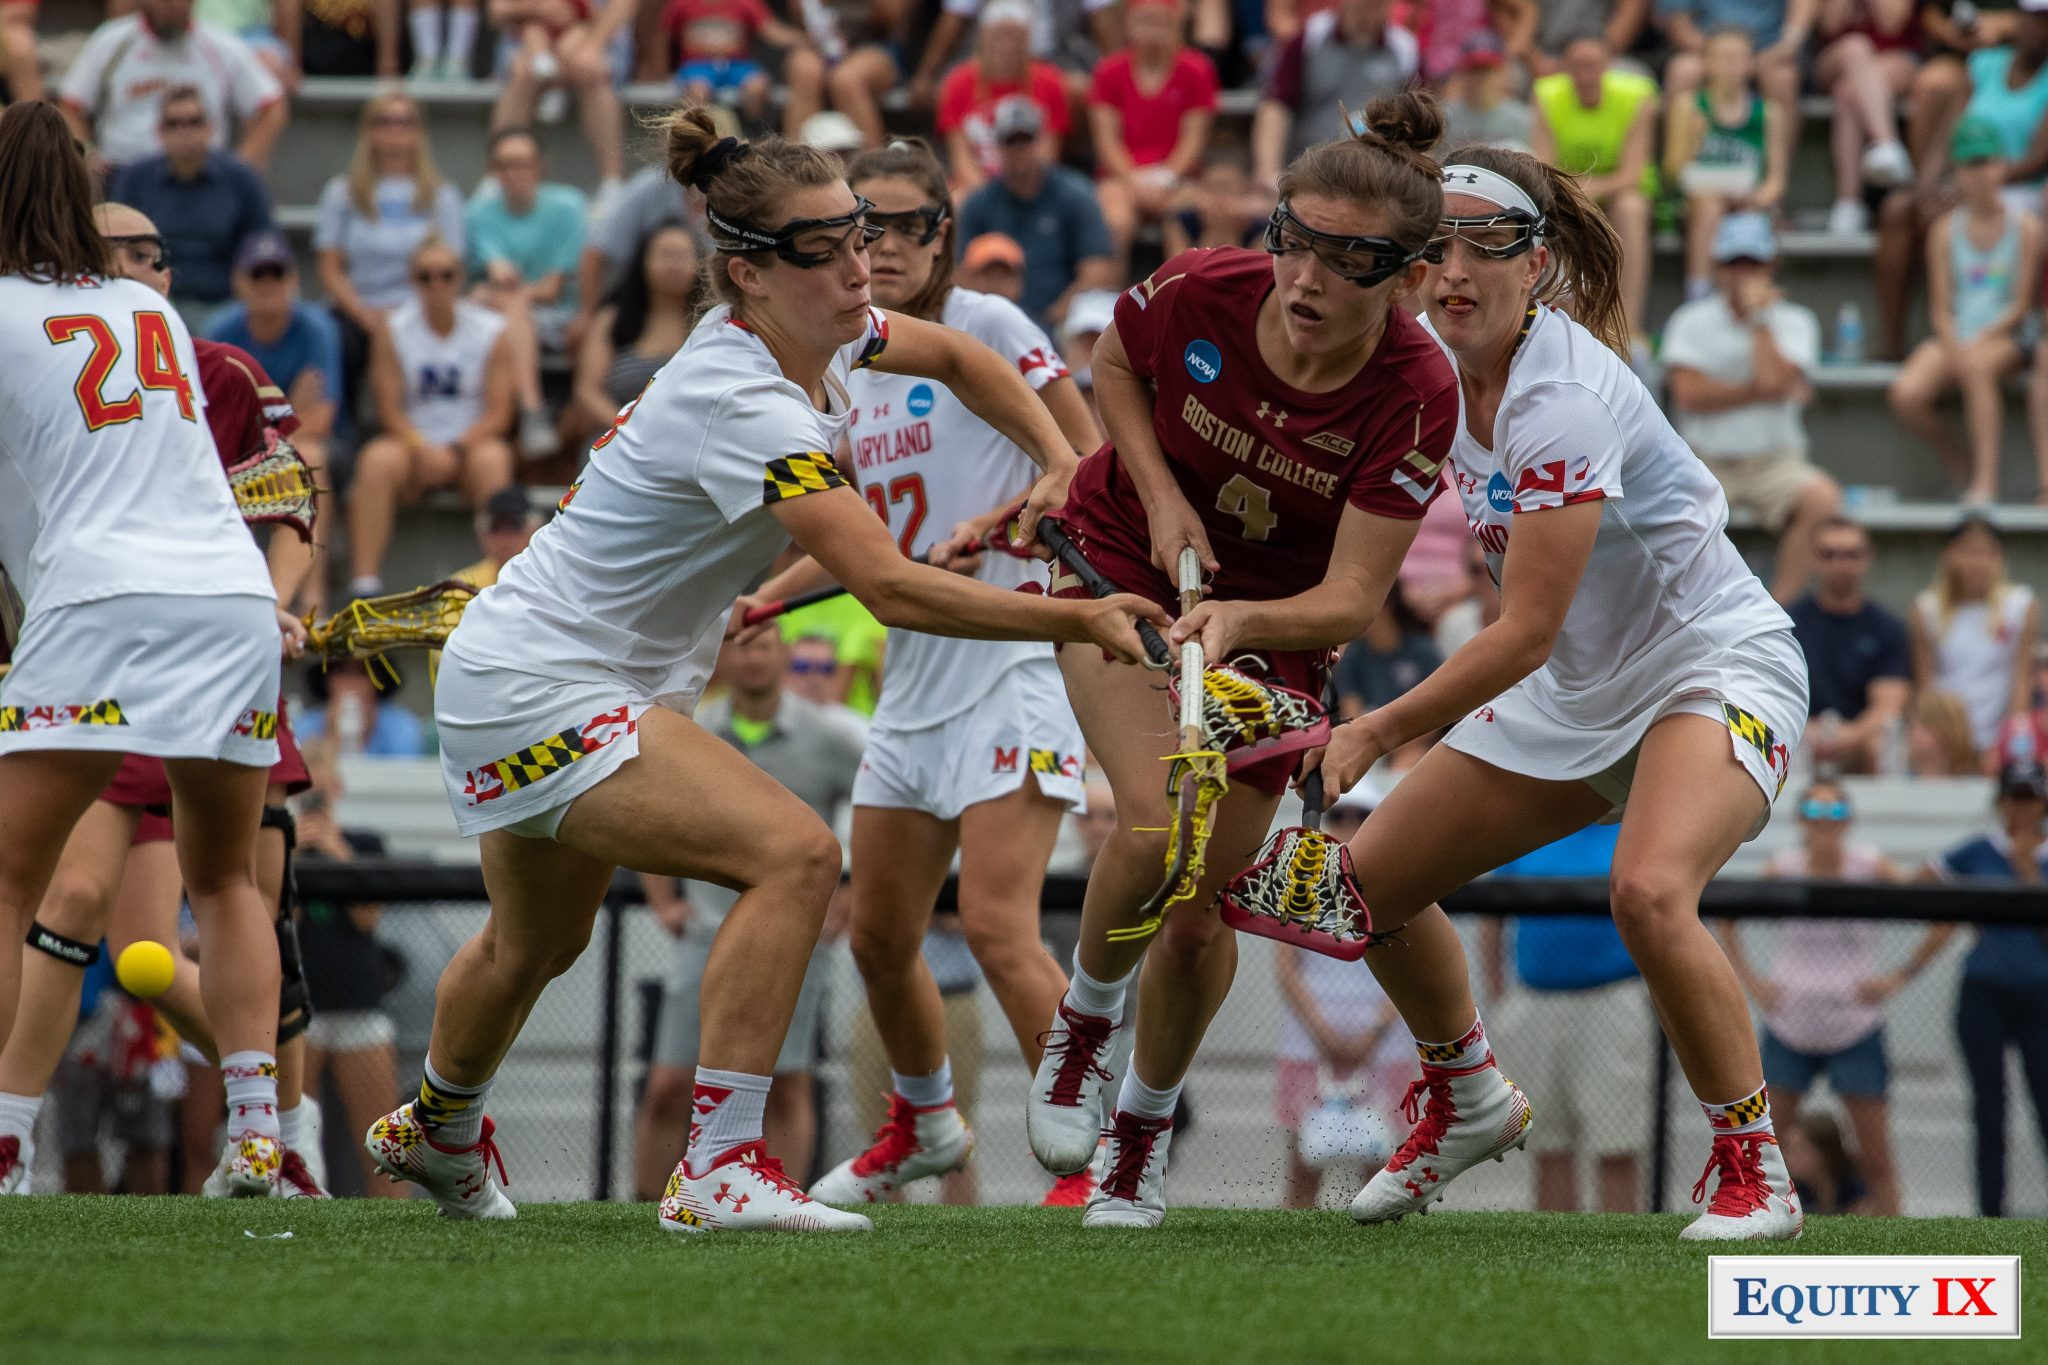 Kenzie Kent shoots left handed between two Maryland defenders at 2019 NCAA Women's Lacrosse Championship Game © Equity IX - SportsOgram - Leigh Ernst Friestedt